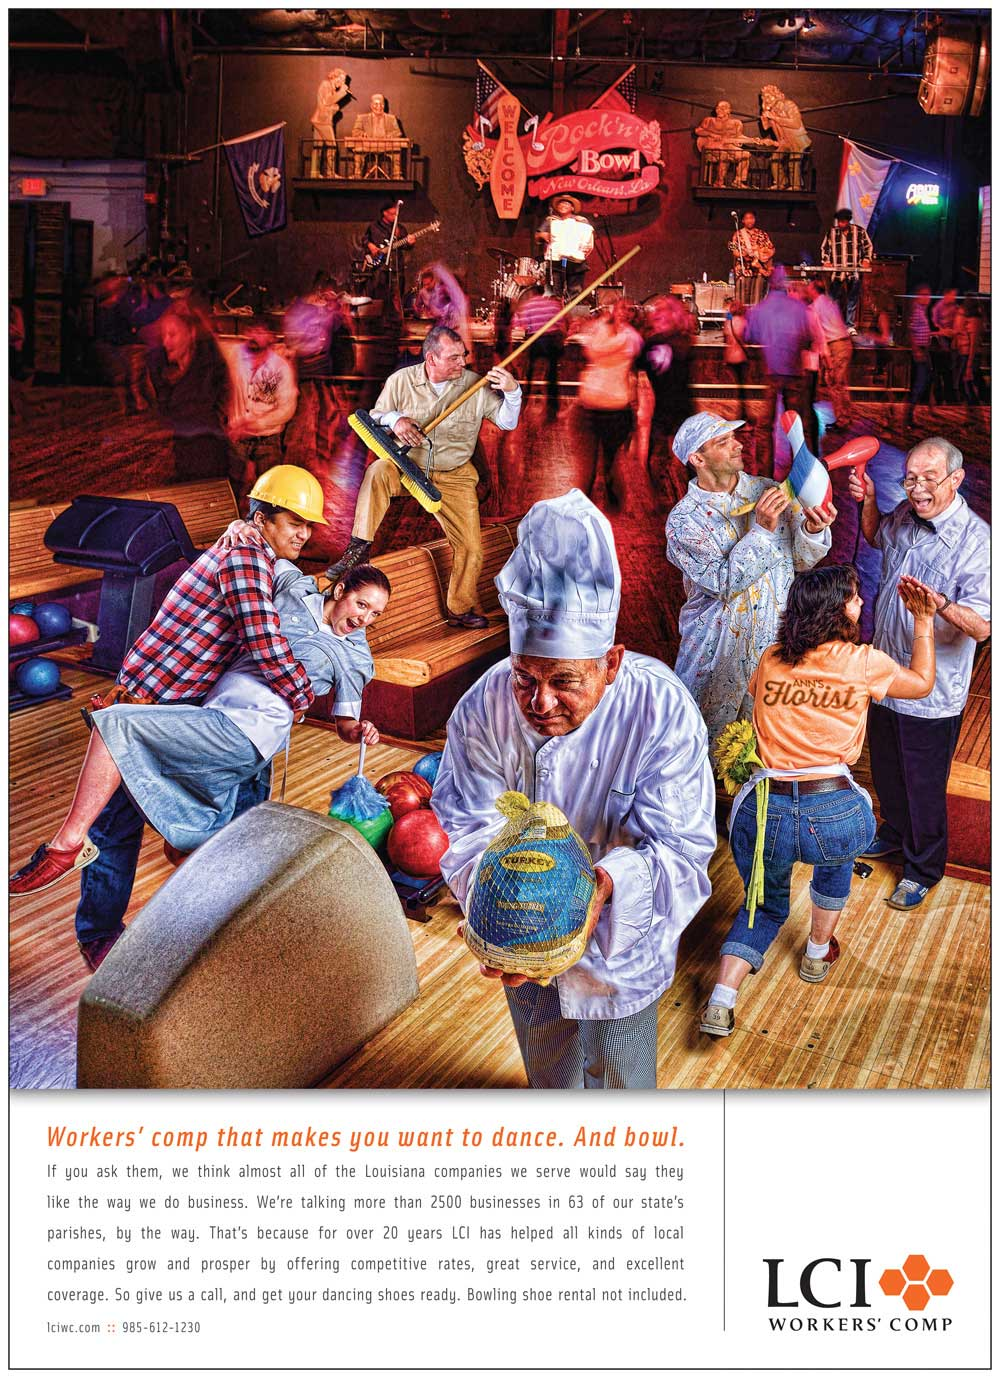 LCI Workers' Comp advertising campaign shot in New Orleans at Rock 'n Bowl.